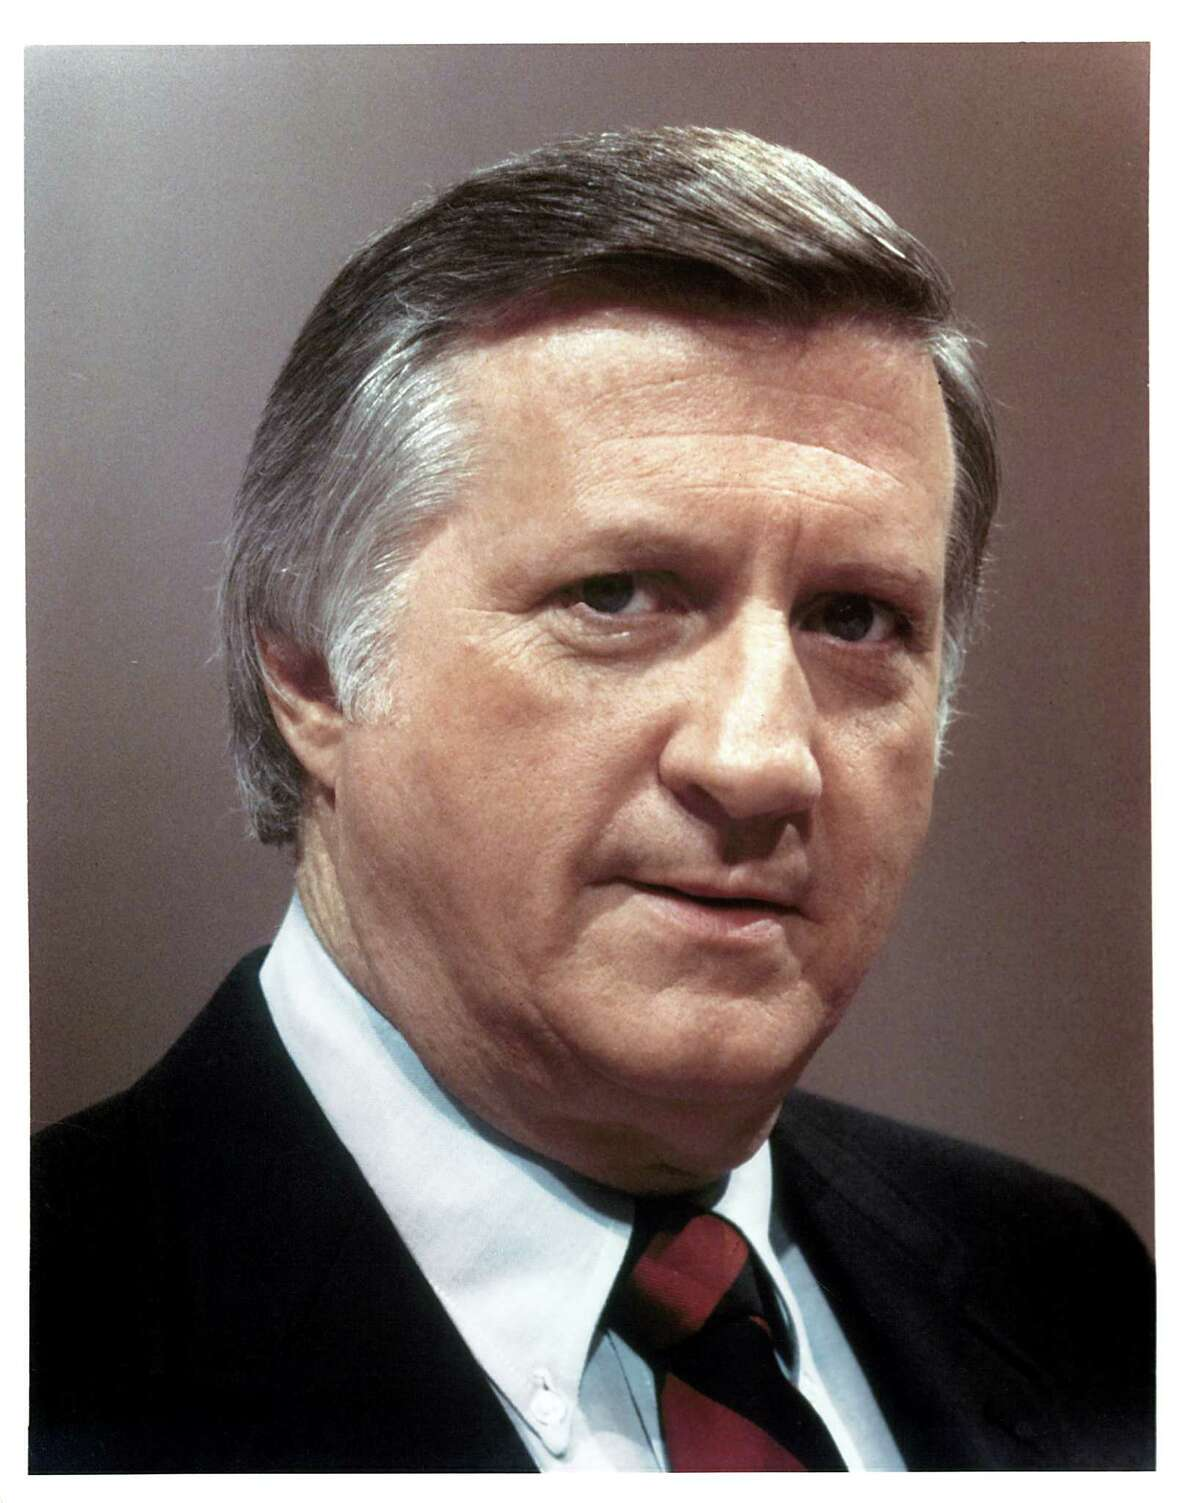 George Steinbrenner The FBI has three separate files on the late principal owner and managing partner of the New York Yankees. One pertains to illegal campaign contributions Steinbrenner made to the Nixon presidential campaign, possible fraud in the Ohio federal highway program, and his appeal for a pardon from his illegal campaign financing conviction. Source: Federal Bureau of Investigation